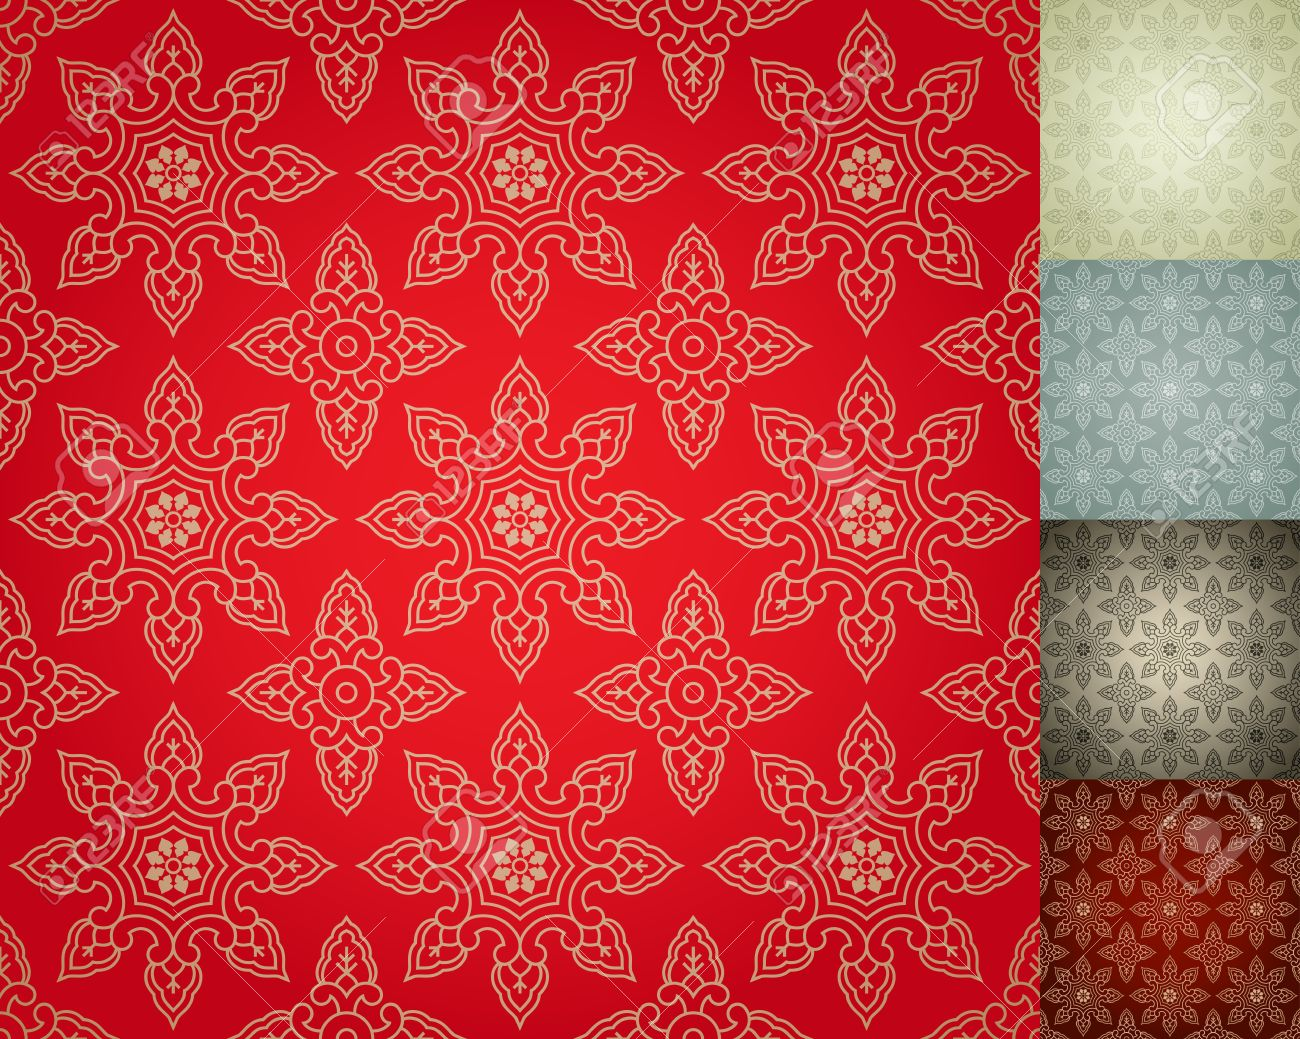 Chinese Seamless Damask Wallpaper Background Stock Vector